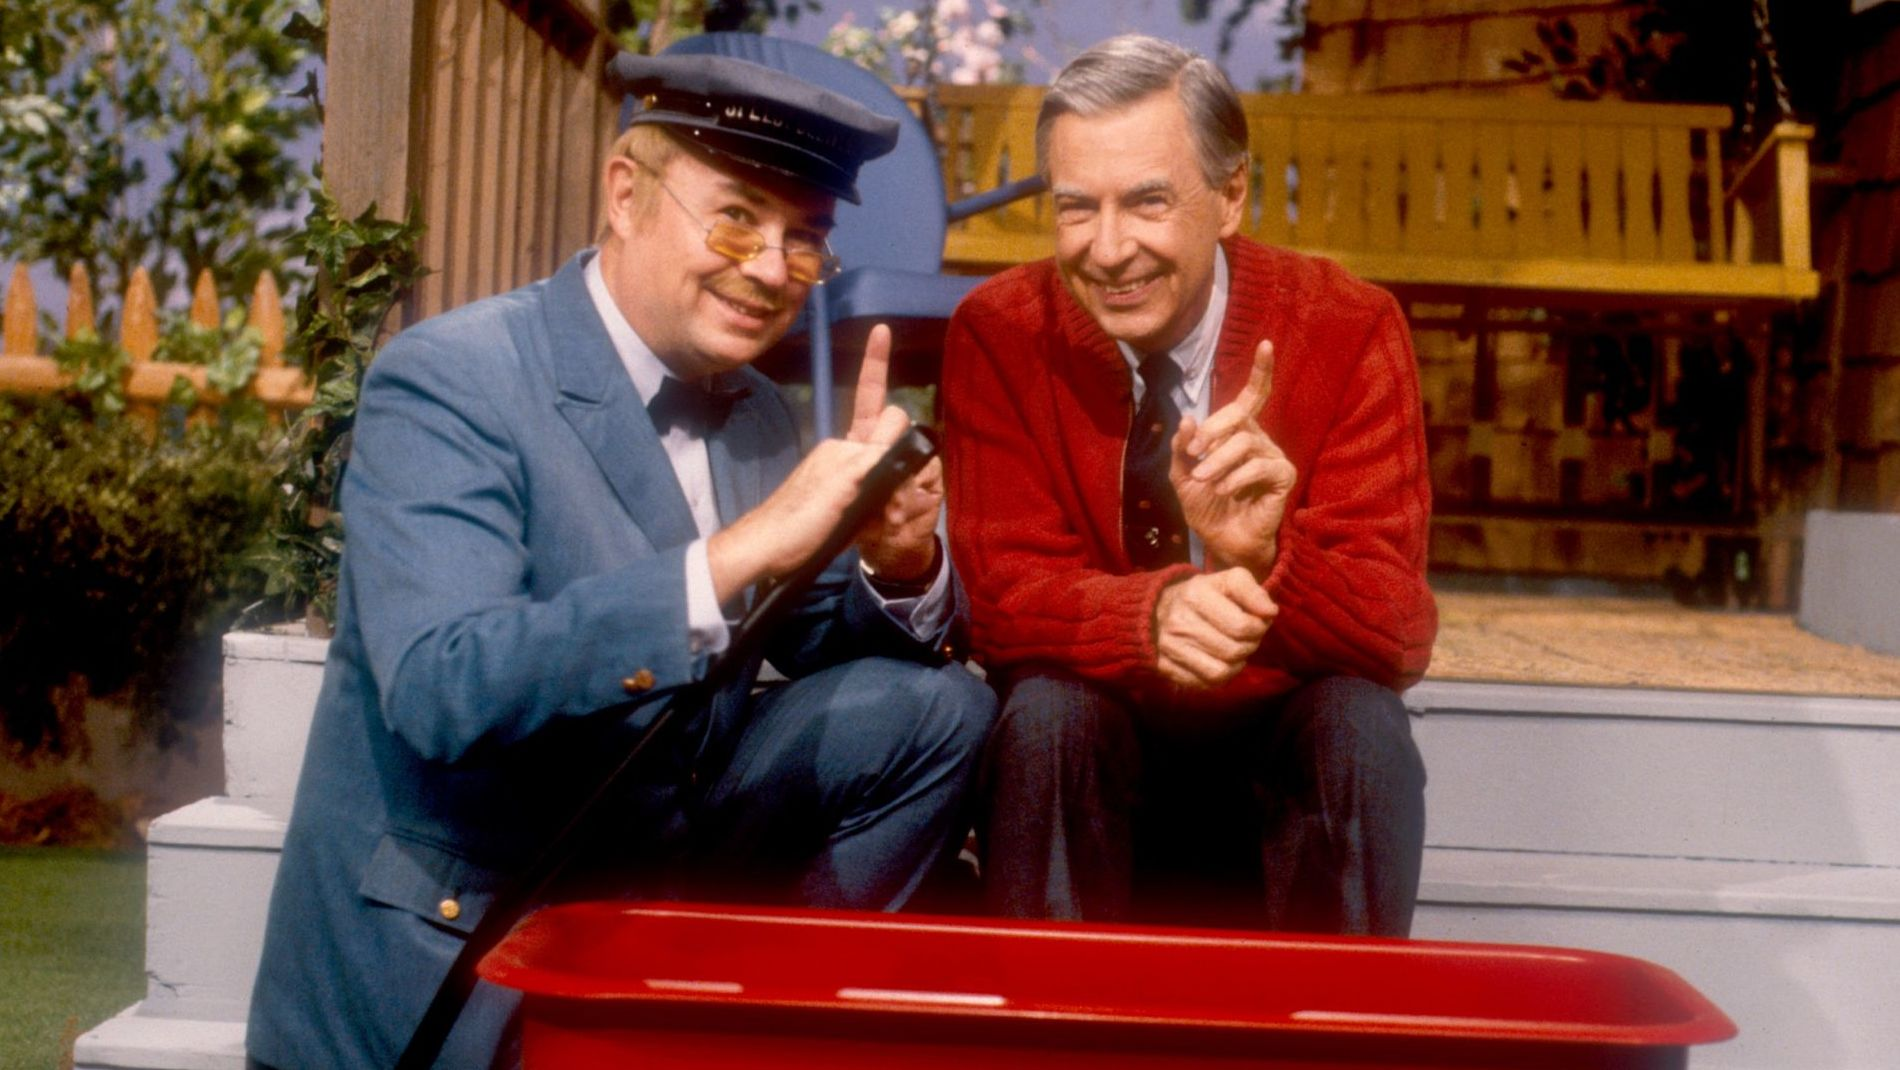 Mister Rogers Neighborhood The 10 Best Celebrity Sightings Thirteen New York Public Media